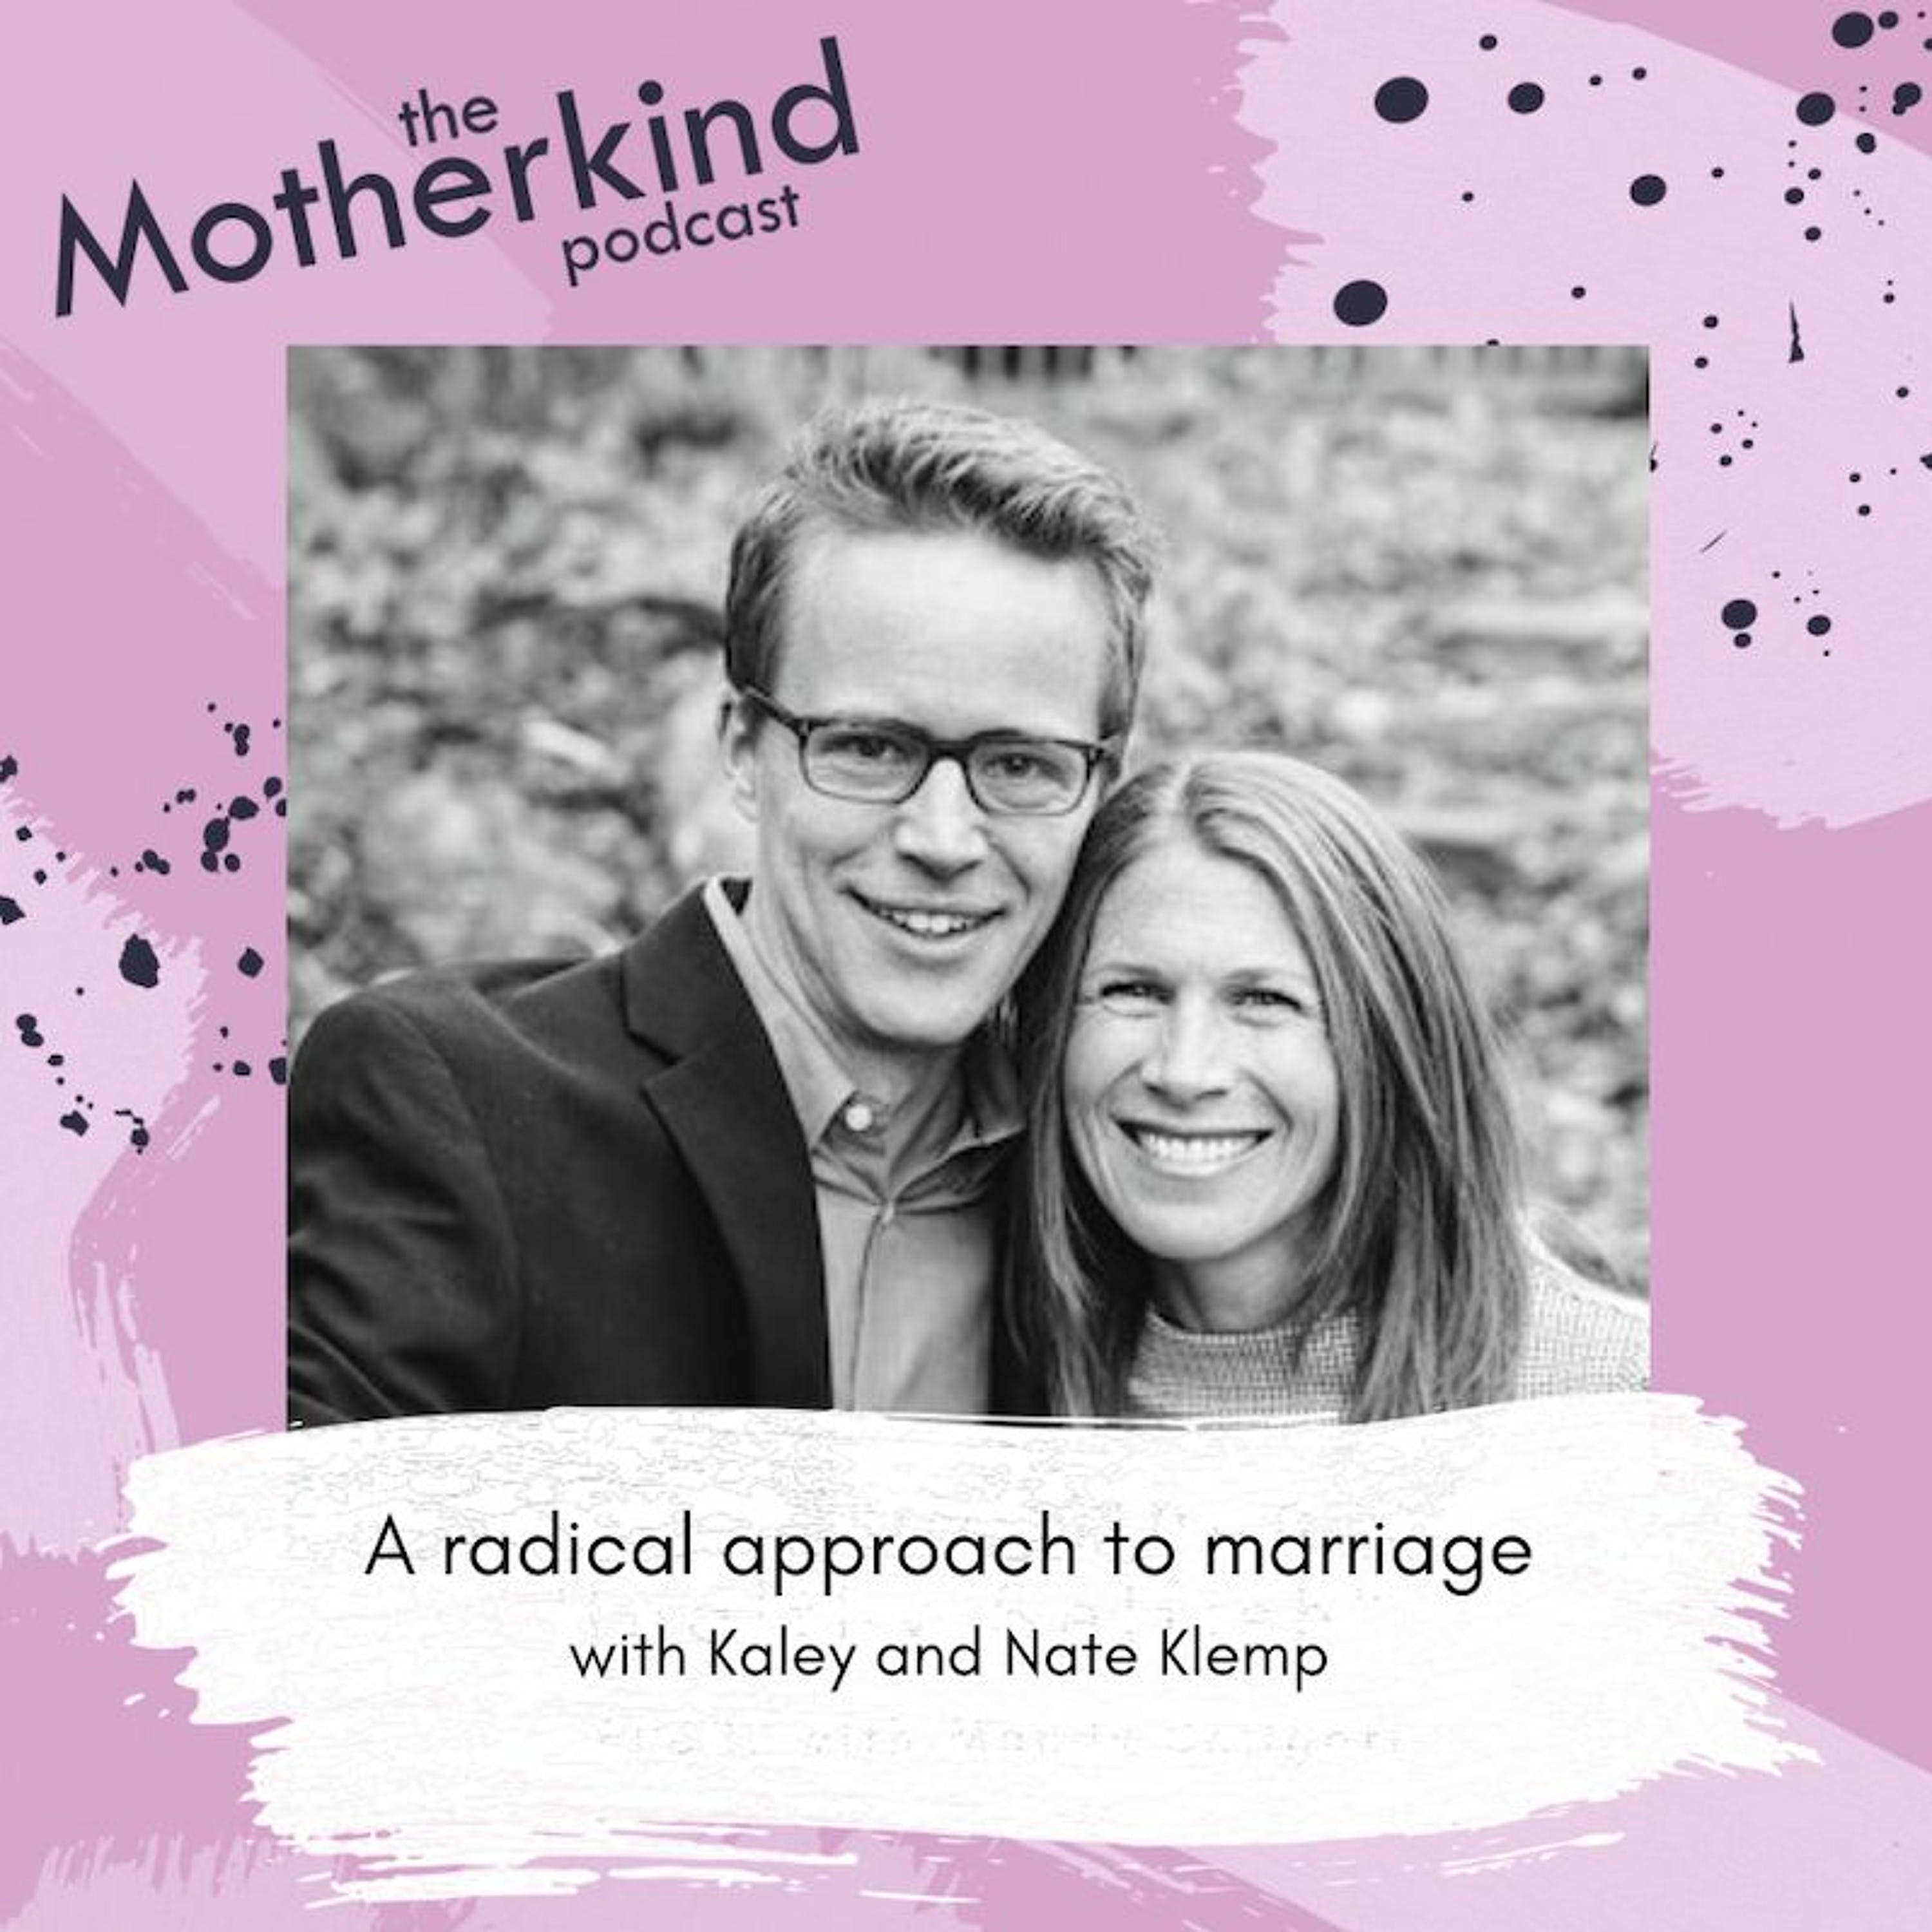 A radical approach to marriage with Kaley and Nate Klemp